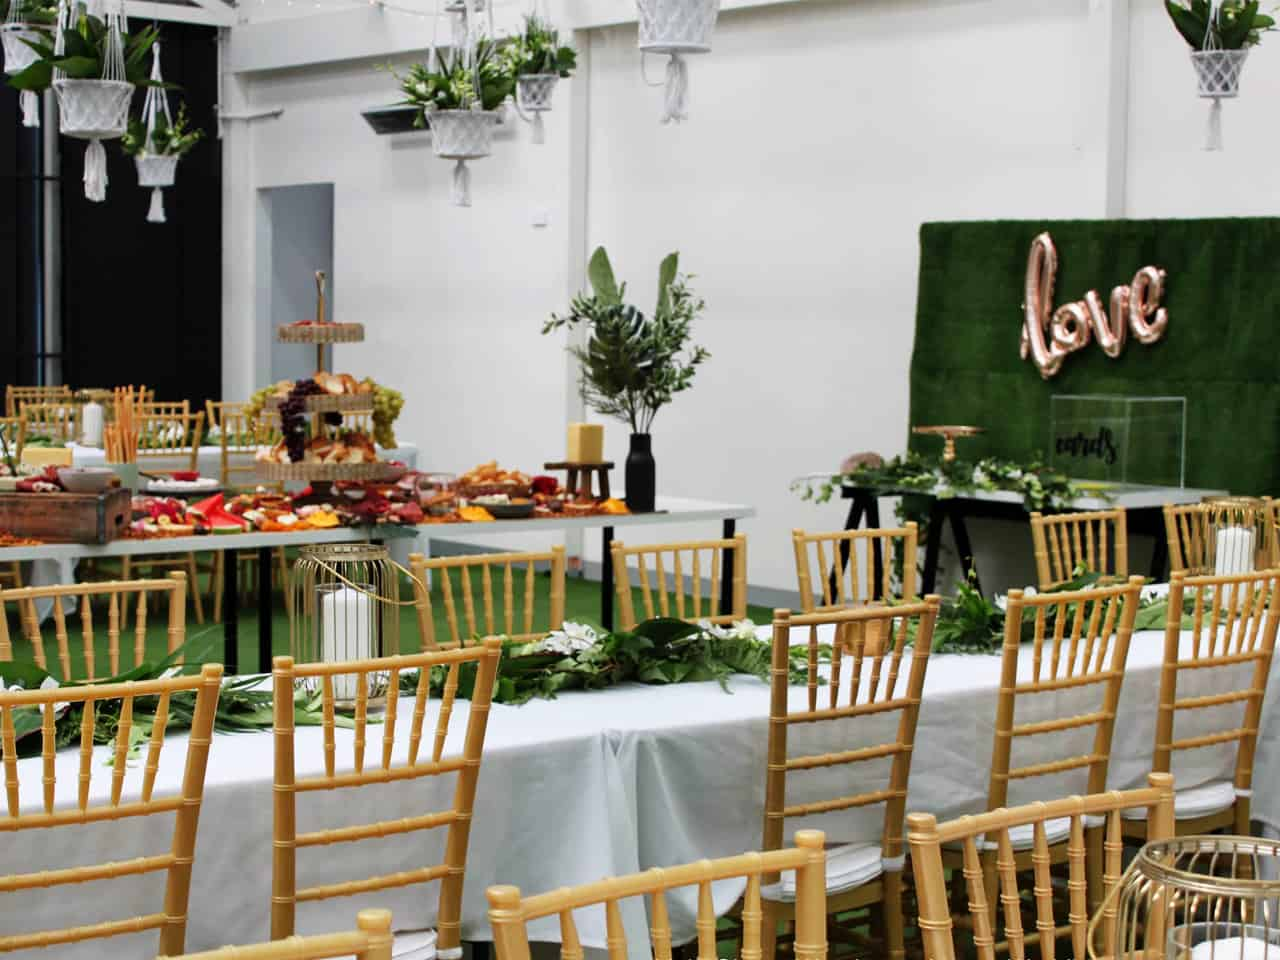 Long tables with wooden chairs